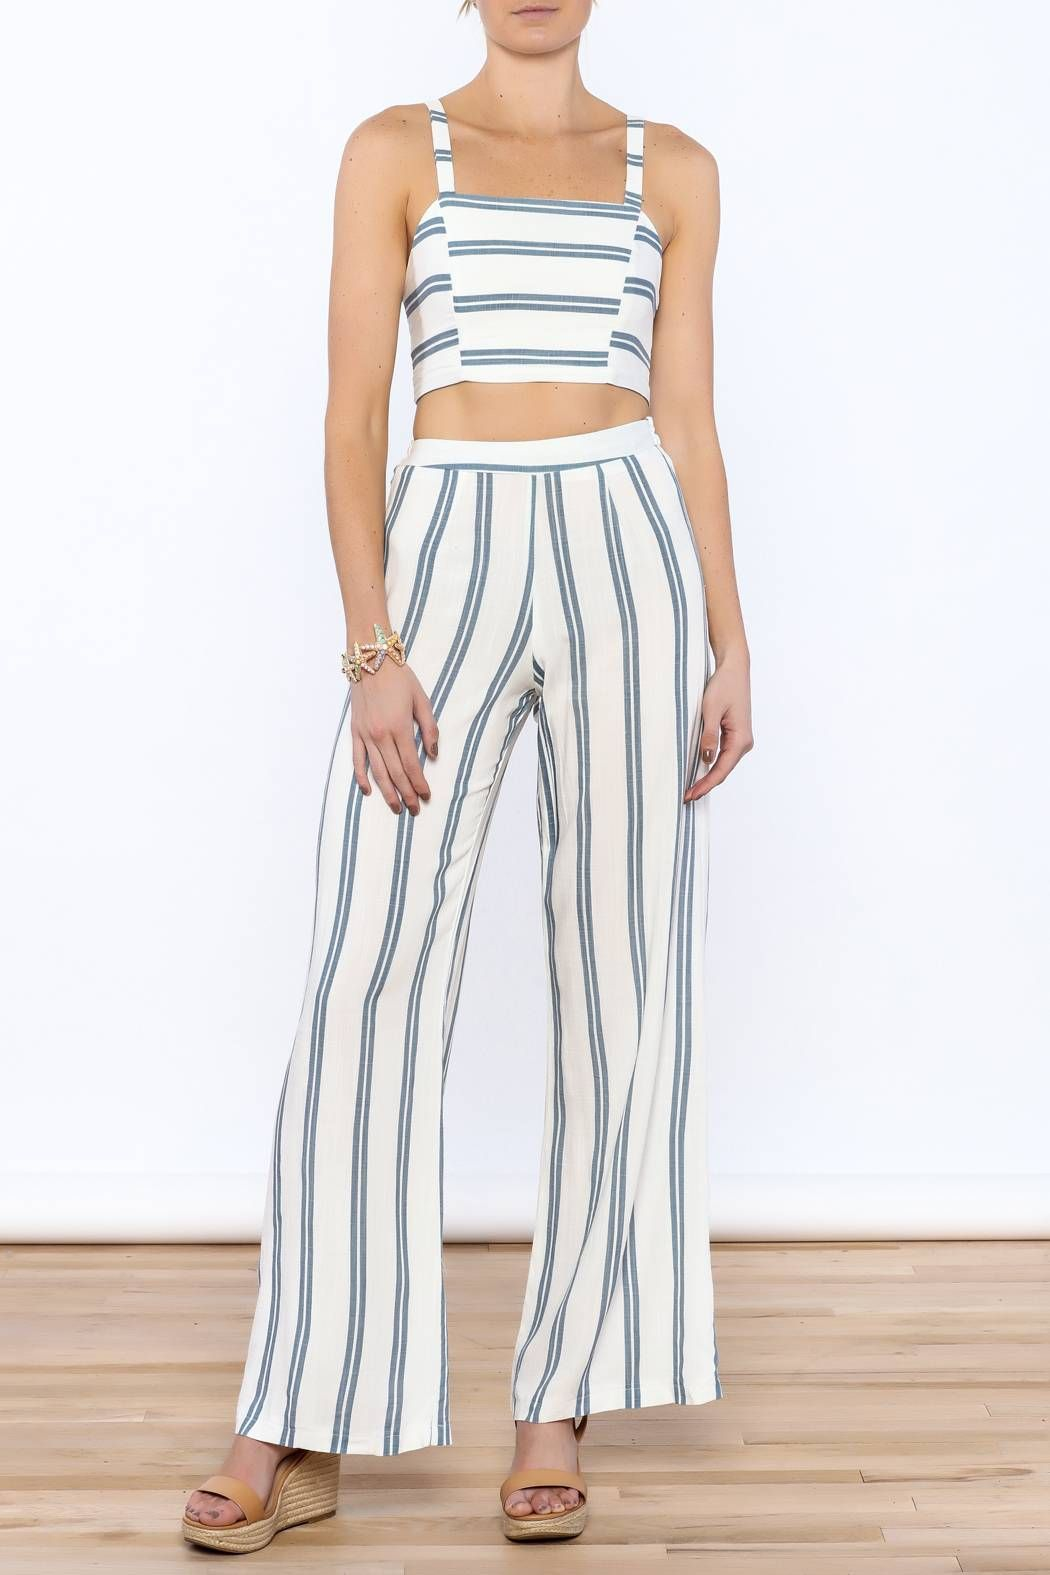 727d3e5b11 Sleeveless fitted crop top with thick straps and a lace-up back closure.  High waist wide-leg pants with a hidden side zipper. Stripe Pant Set by  luxxel.